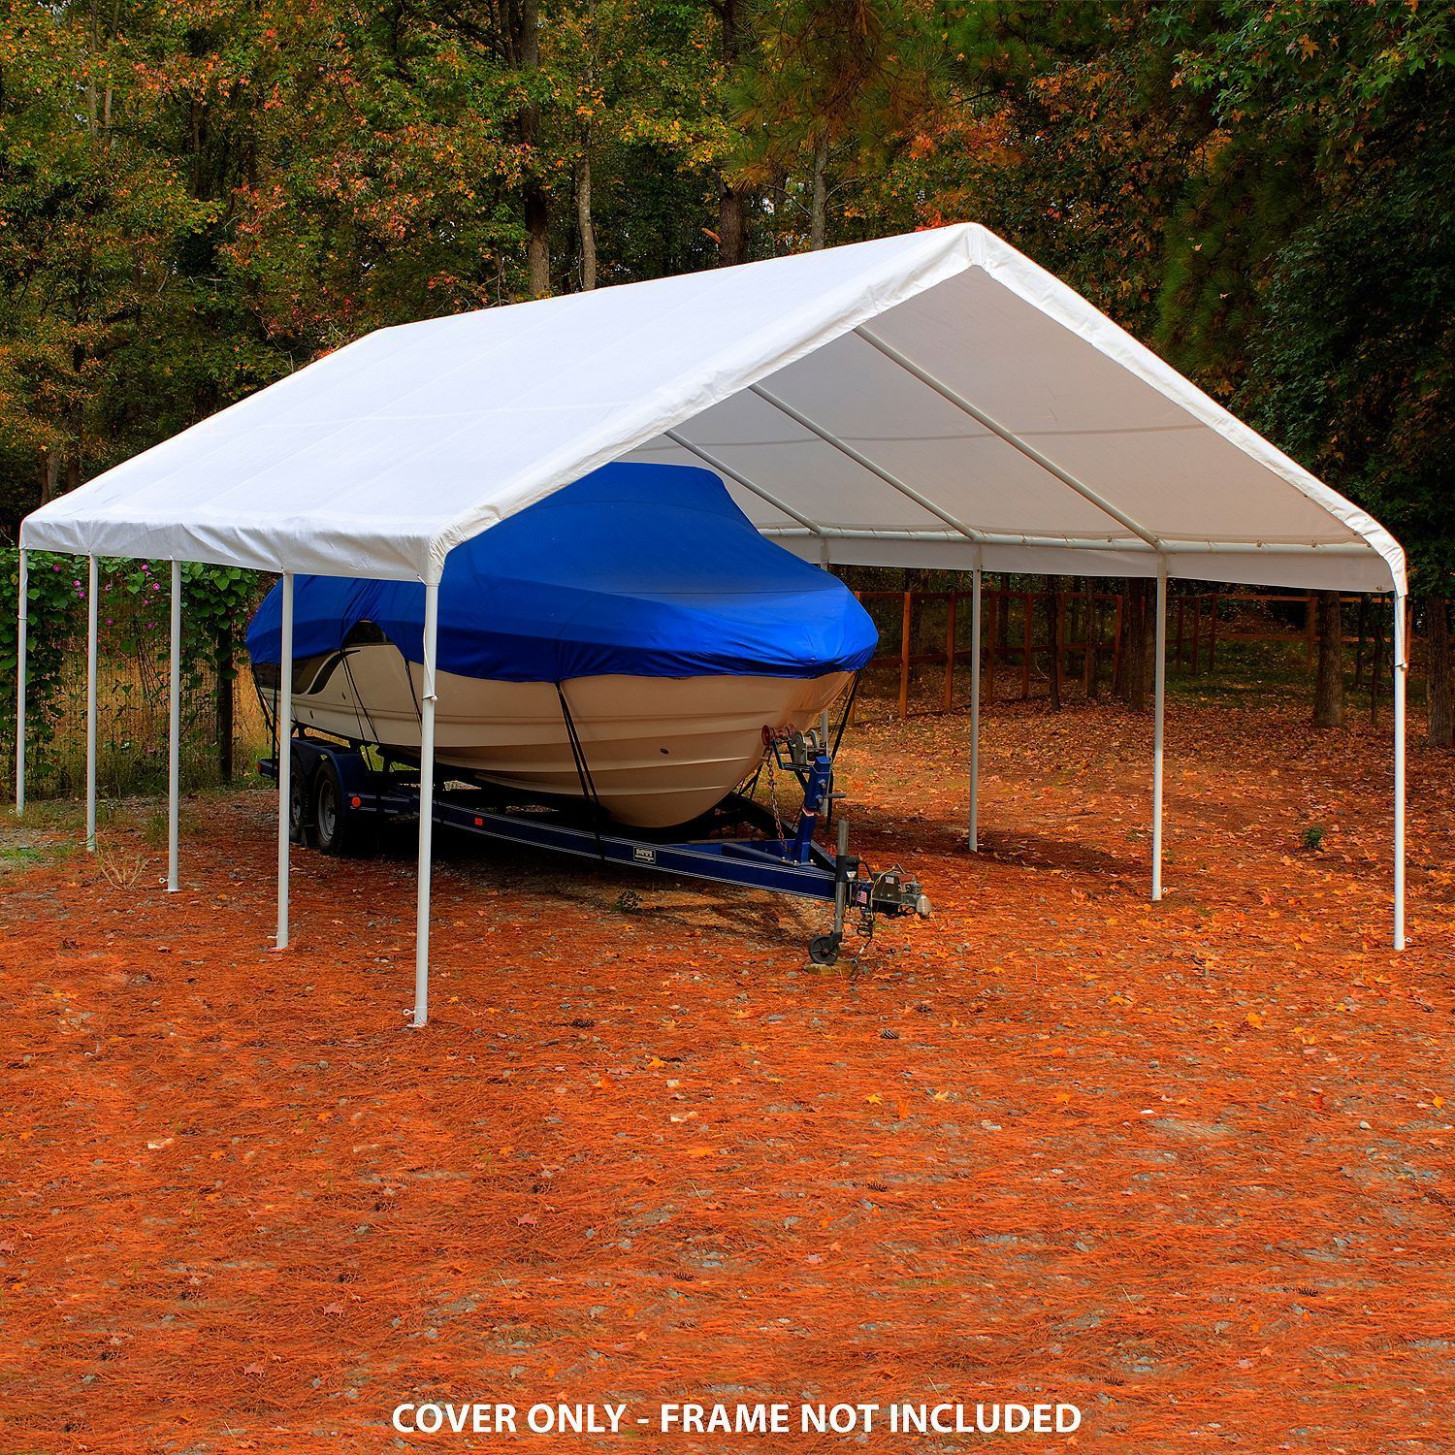 100% Waterproof Abccanopy 10x10 Replacement Top Cover For ..